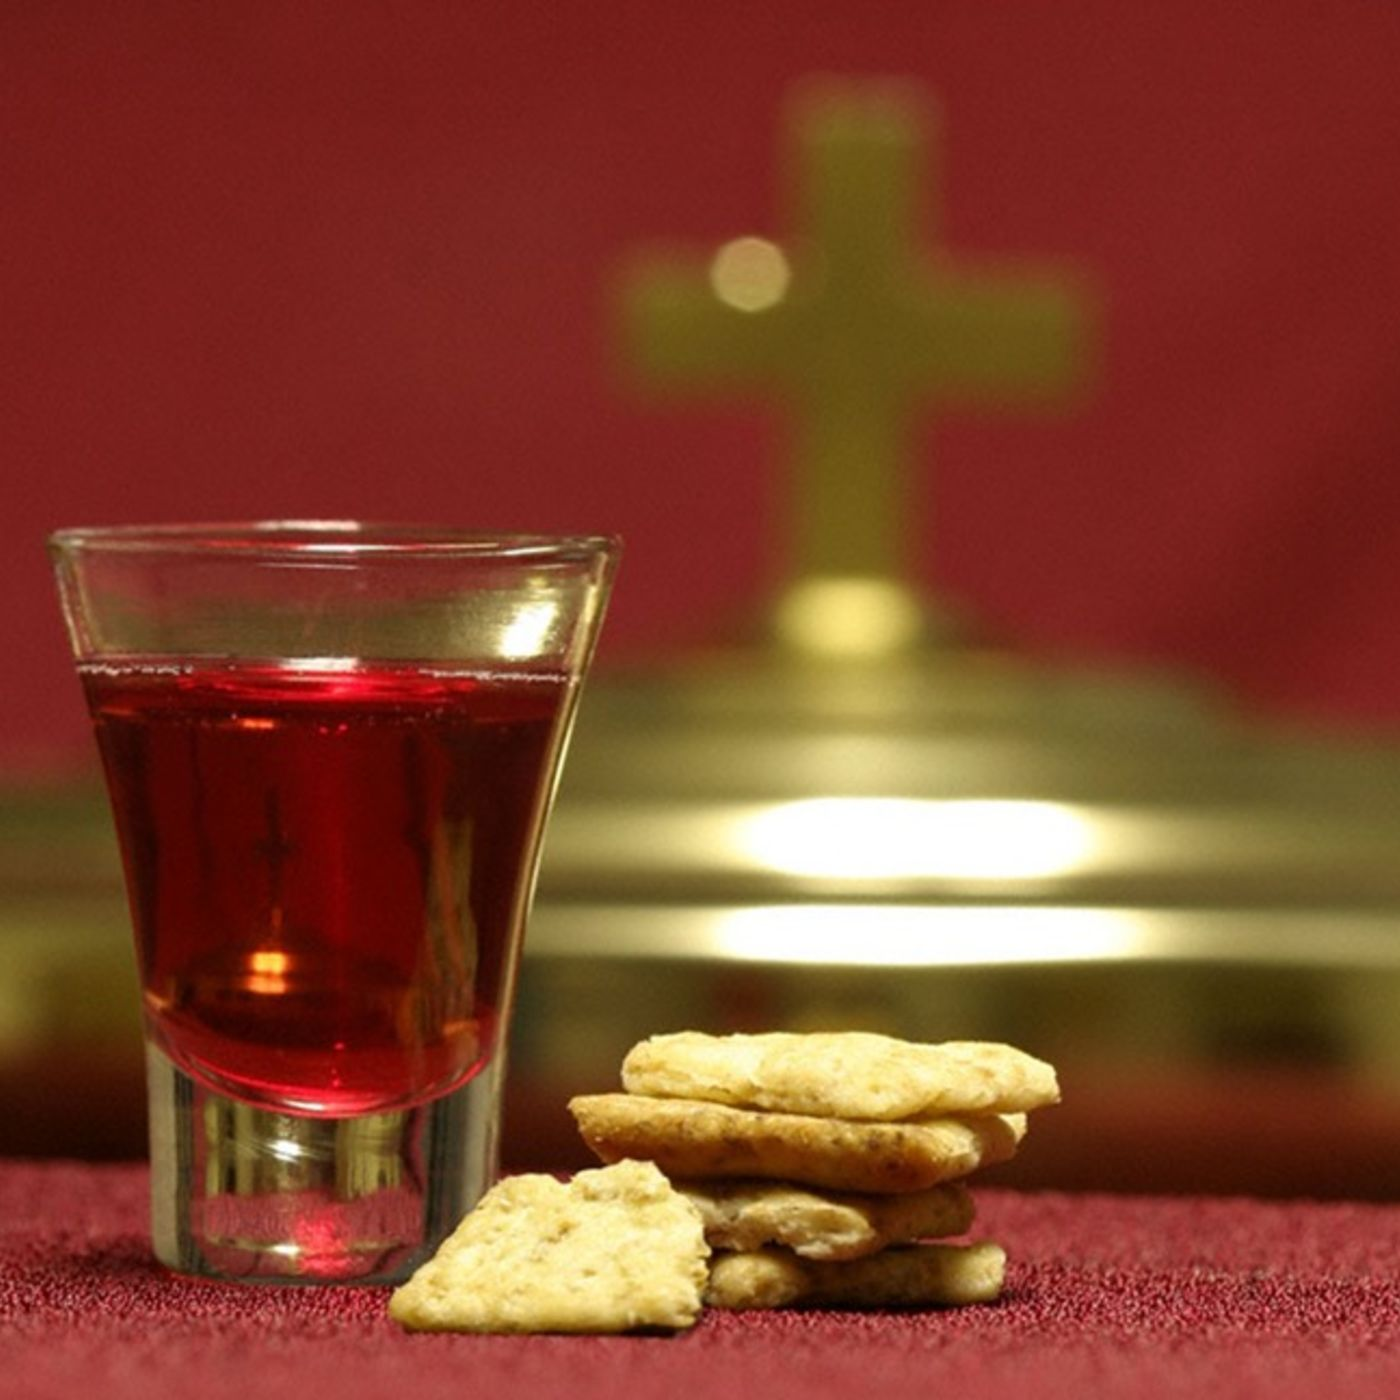 3rd February 2019, forth Sunday of ordinary time.  Evening Communion Service.